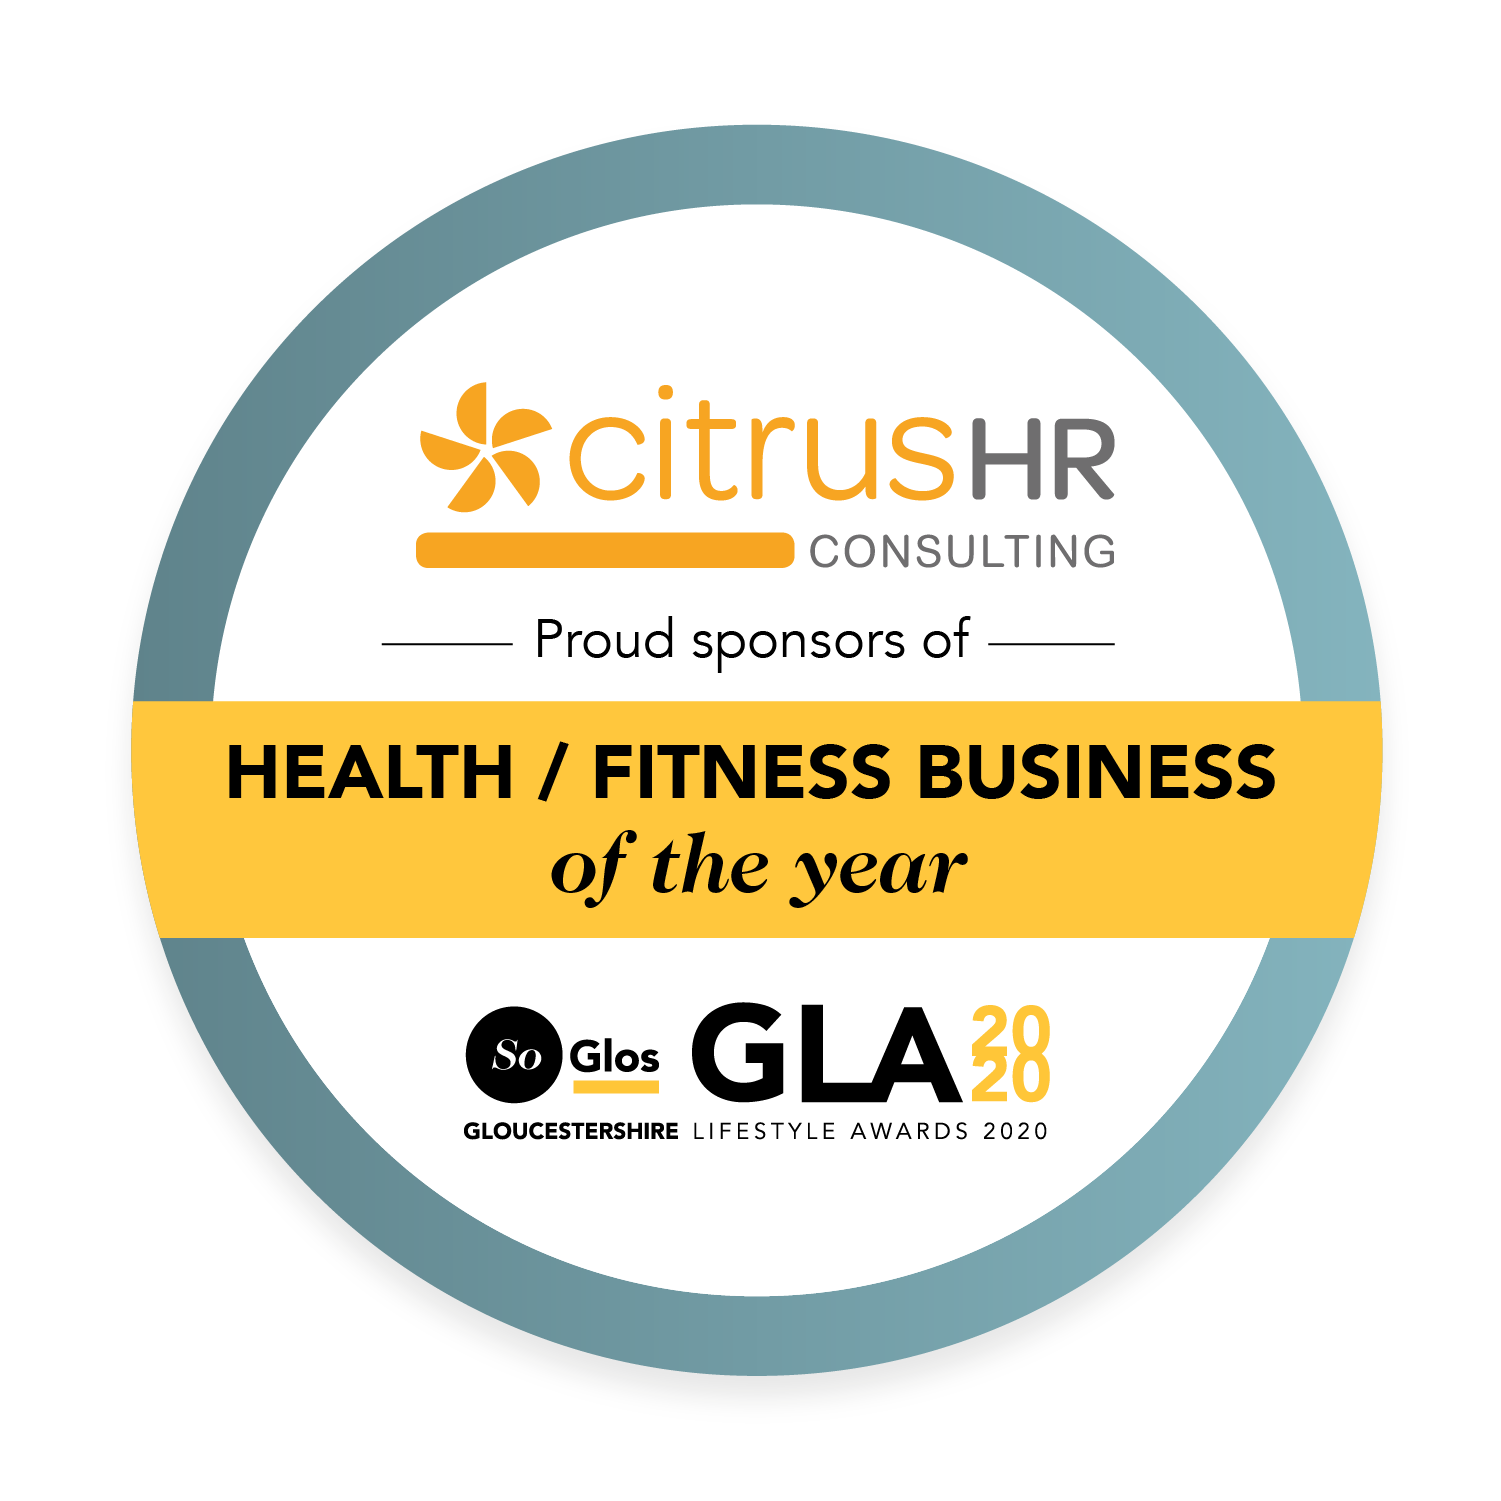 Health / Fitness Business of the Year